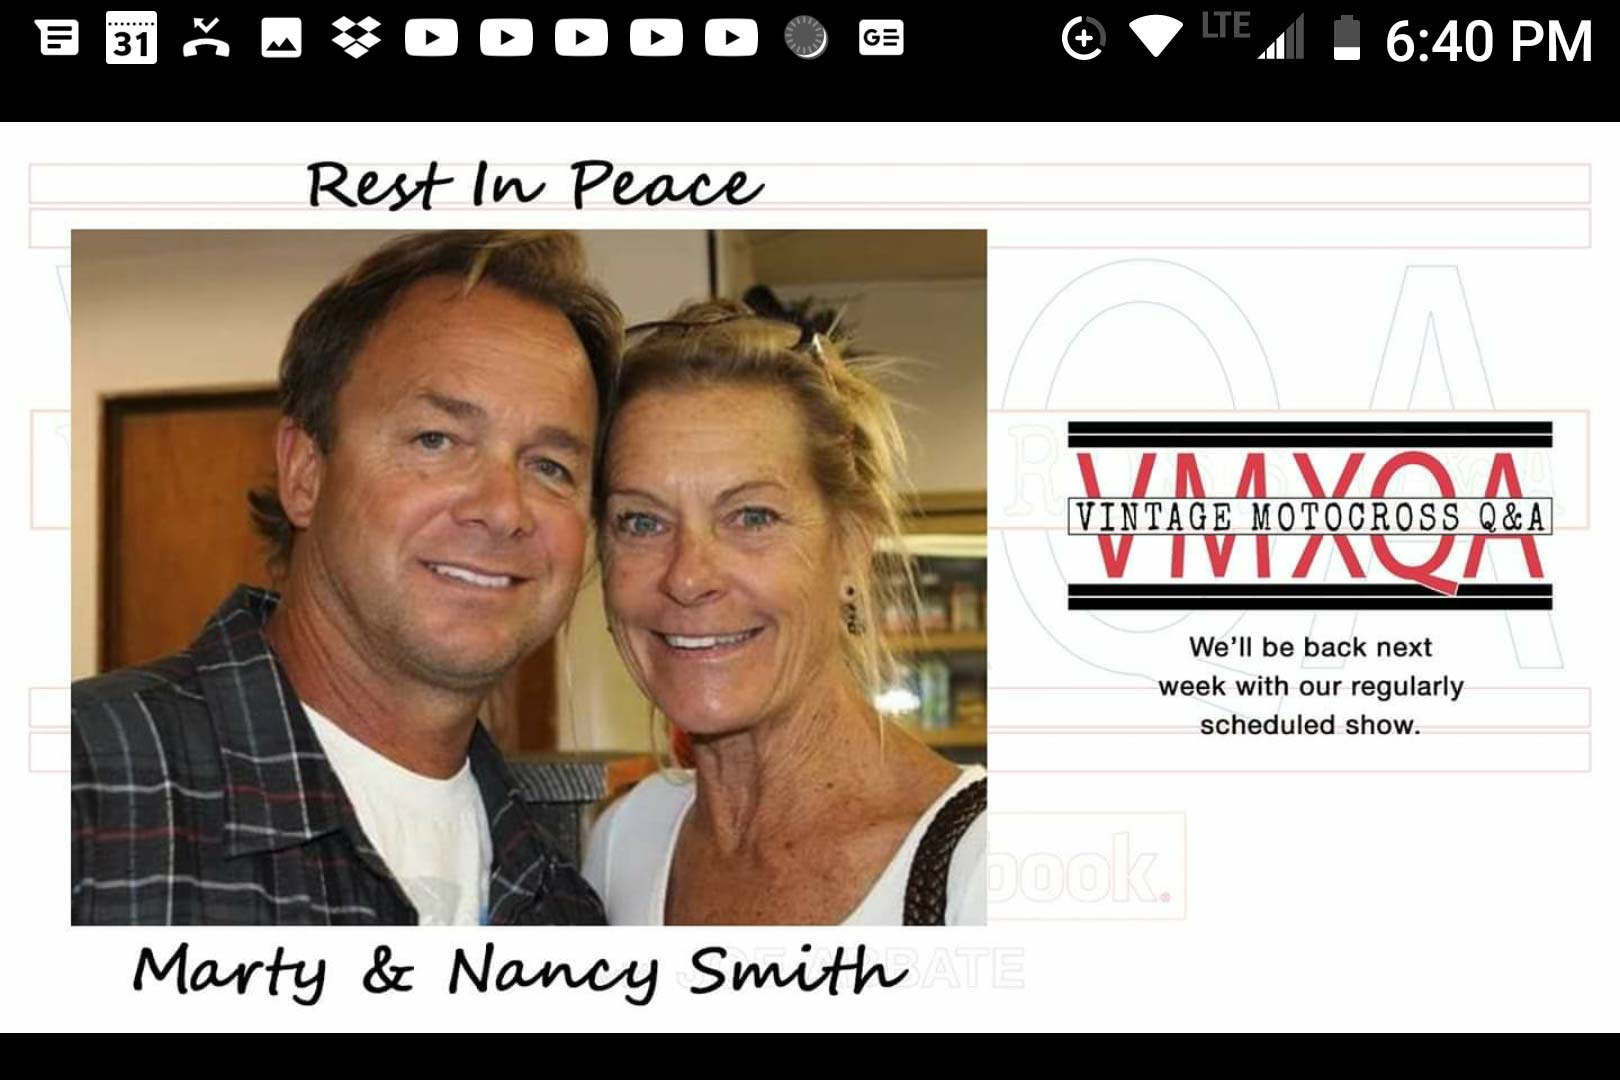 Marty and Nancy Smith